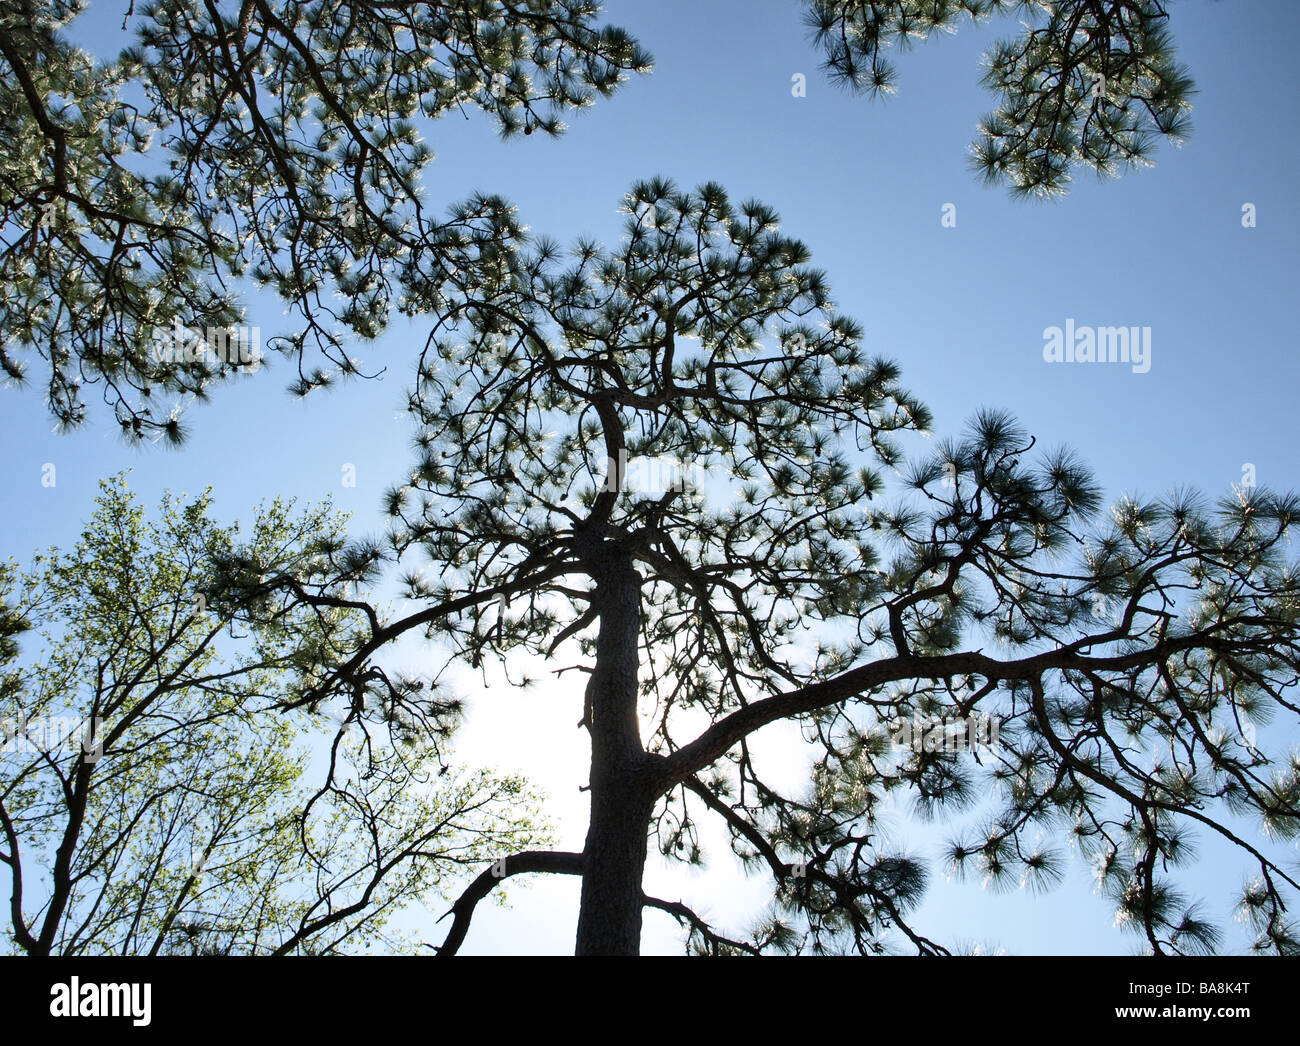 sillouette of long leaf pine tree trees with bright sun behind trunk lighting blue sky and limbs of trees - Stock Image